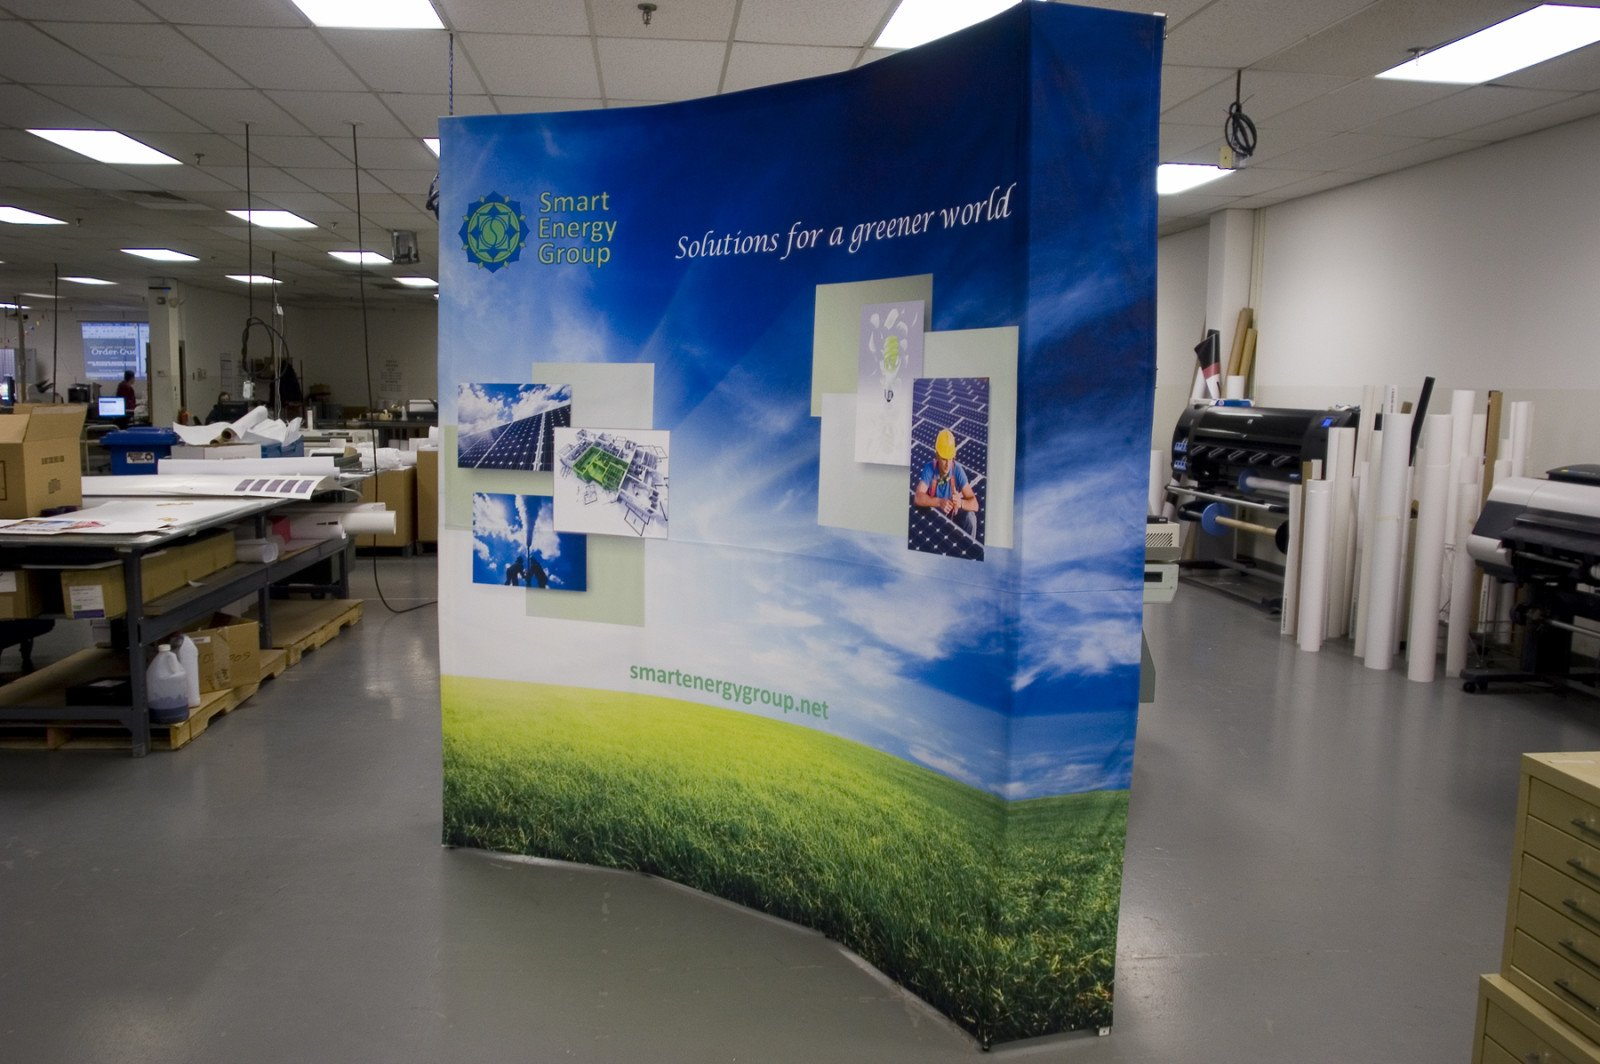 Pop Up Display Trade Show, Backdrop Booth Frame,Stand Pop up Free Case with Carrying Bag,curve,8 Feet